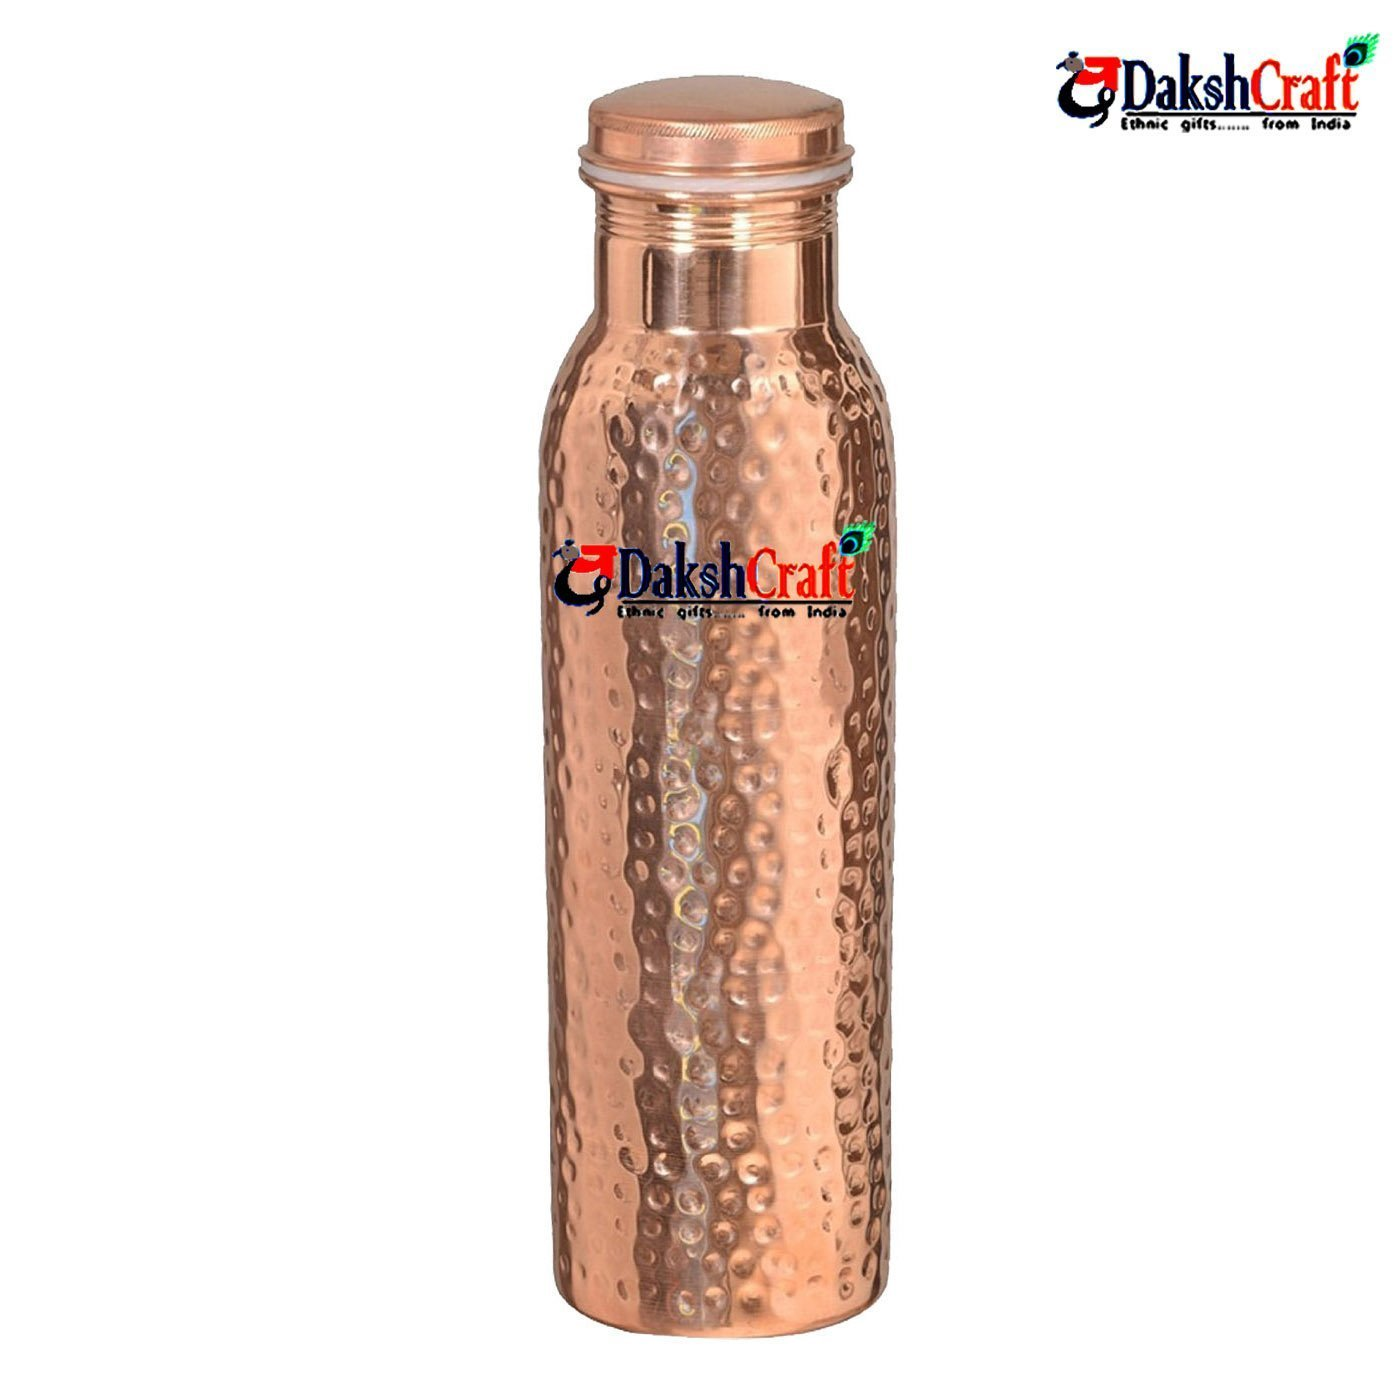 DakshCraft Pure Copper Joint Free Hammered Bottle - 900 ml / 30.43 oz pr pcs with Rubber Washer - A Leak Proof Ayurvedic Pure Copper Bottle